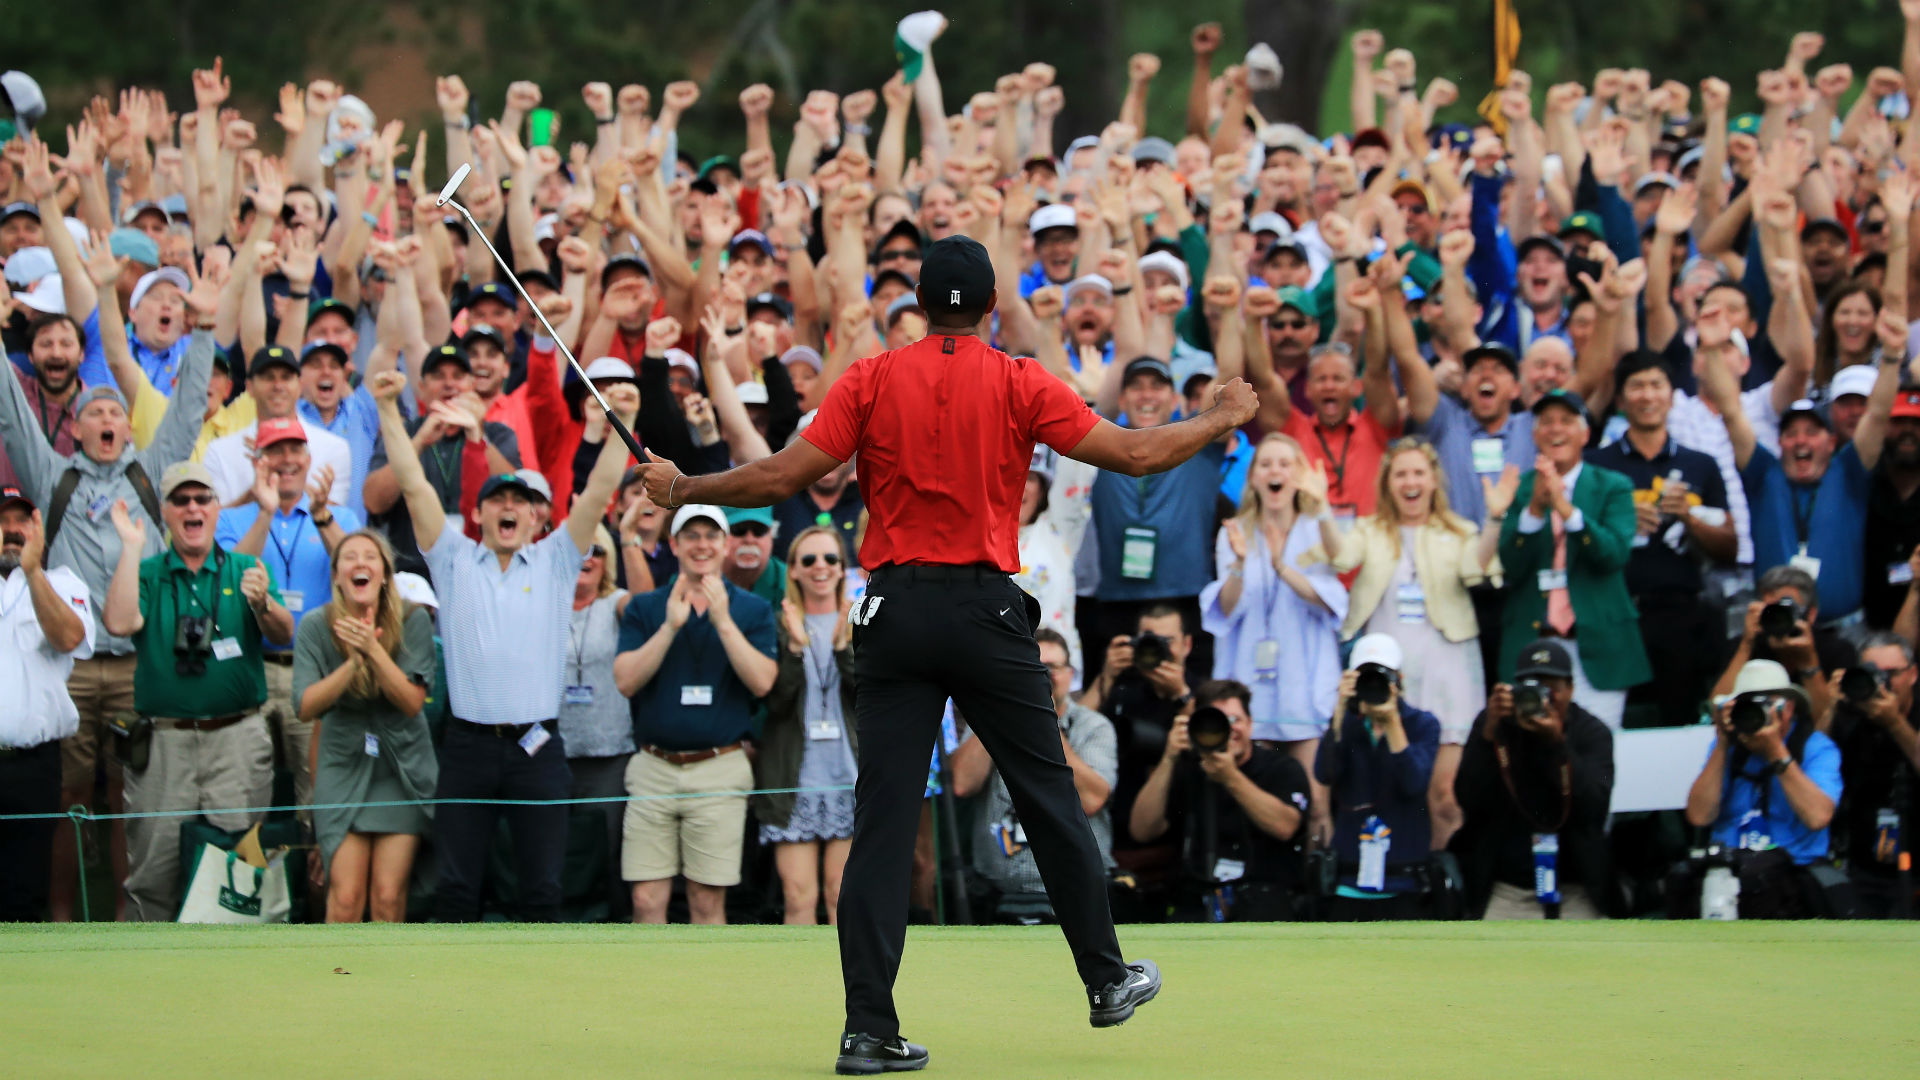 MJ on Tiger - 'Greatest comeback I've ever seen'